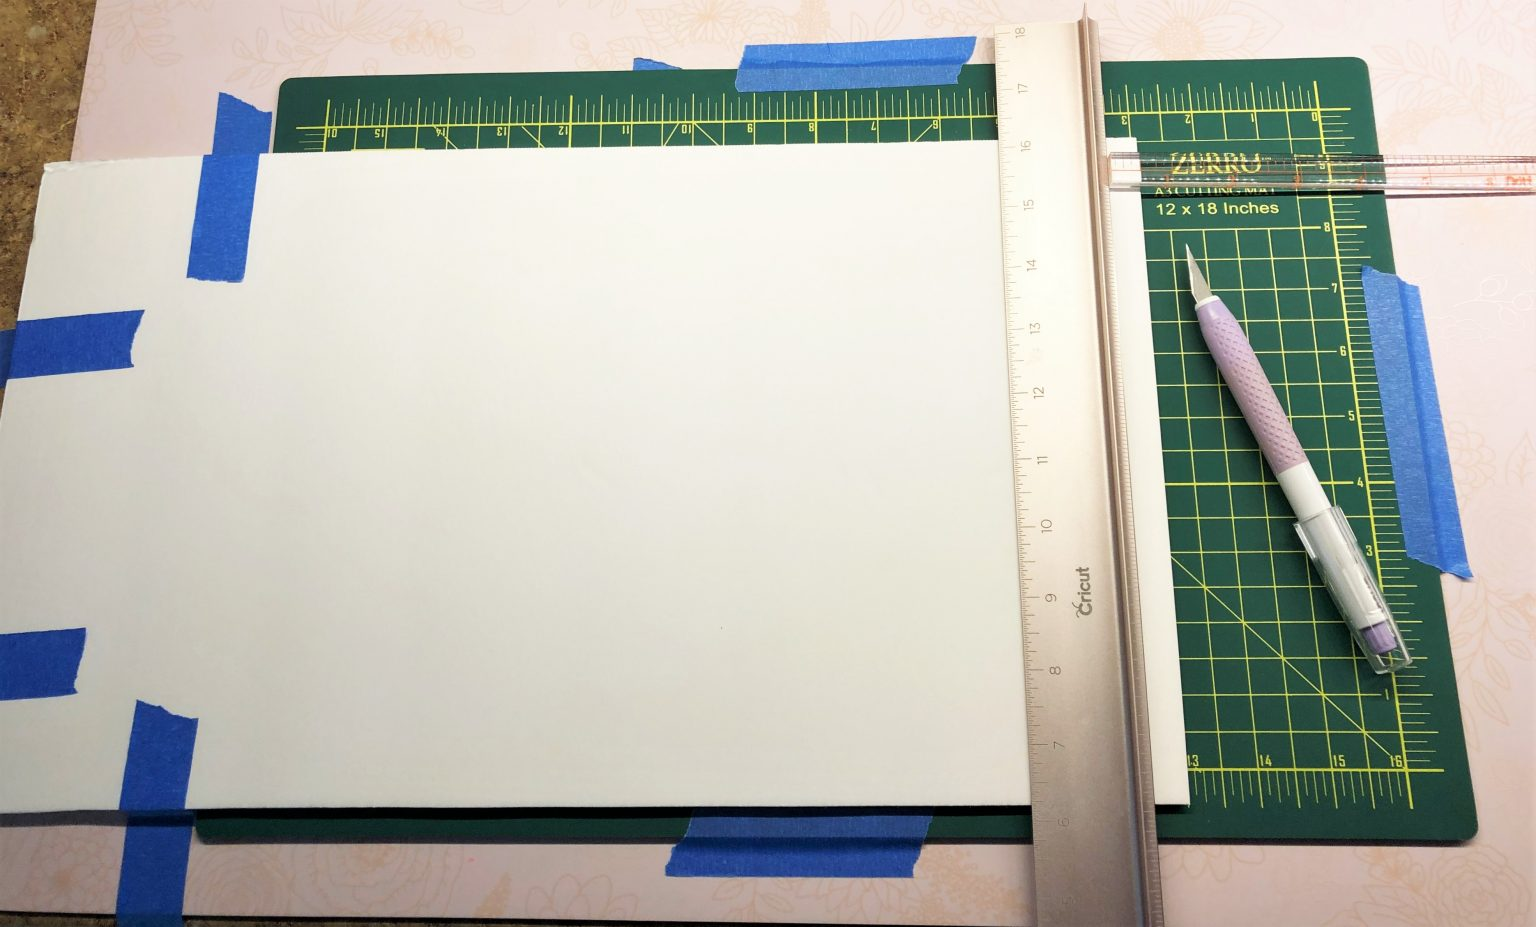 Cutting foam strips for my shadow box paper art project layers.